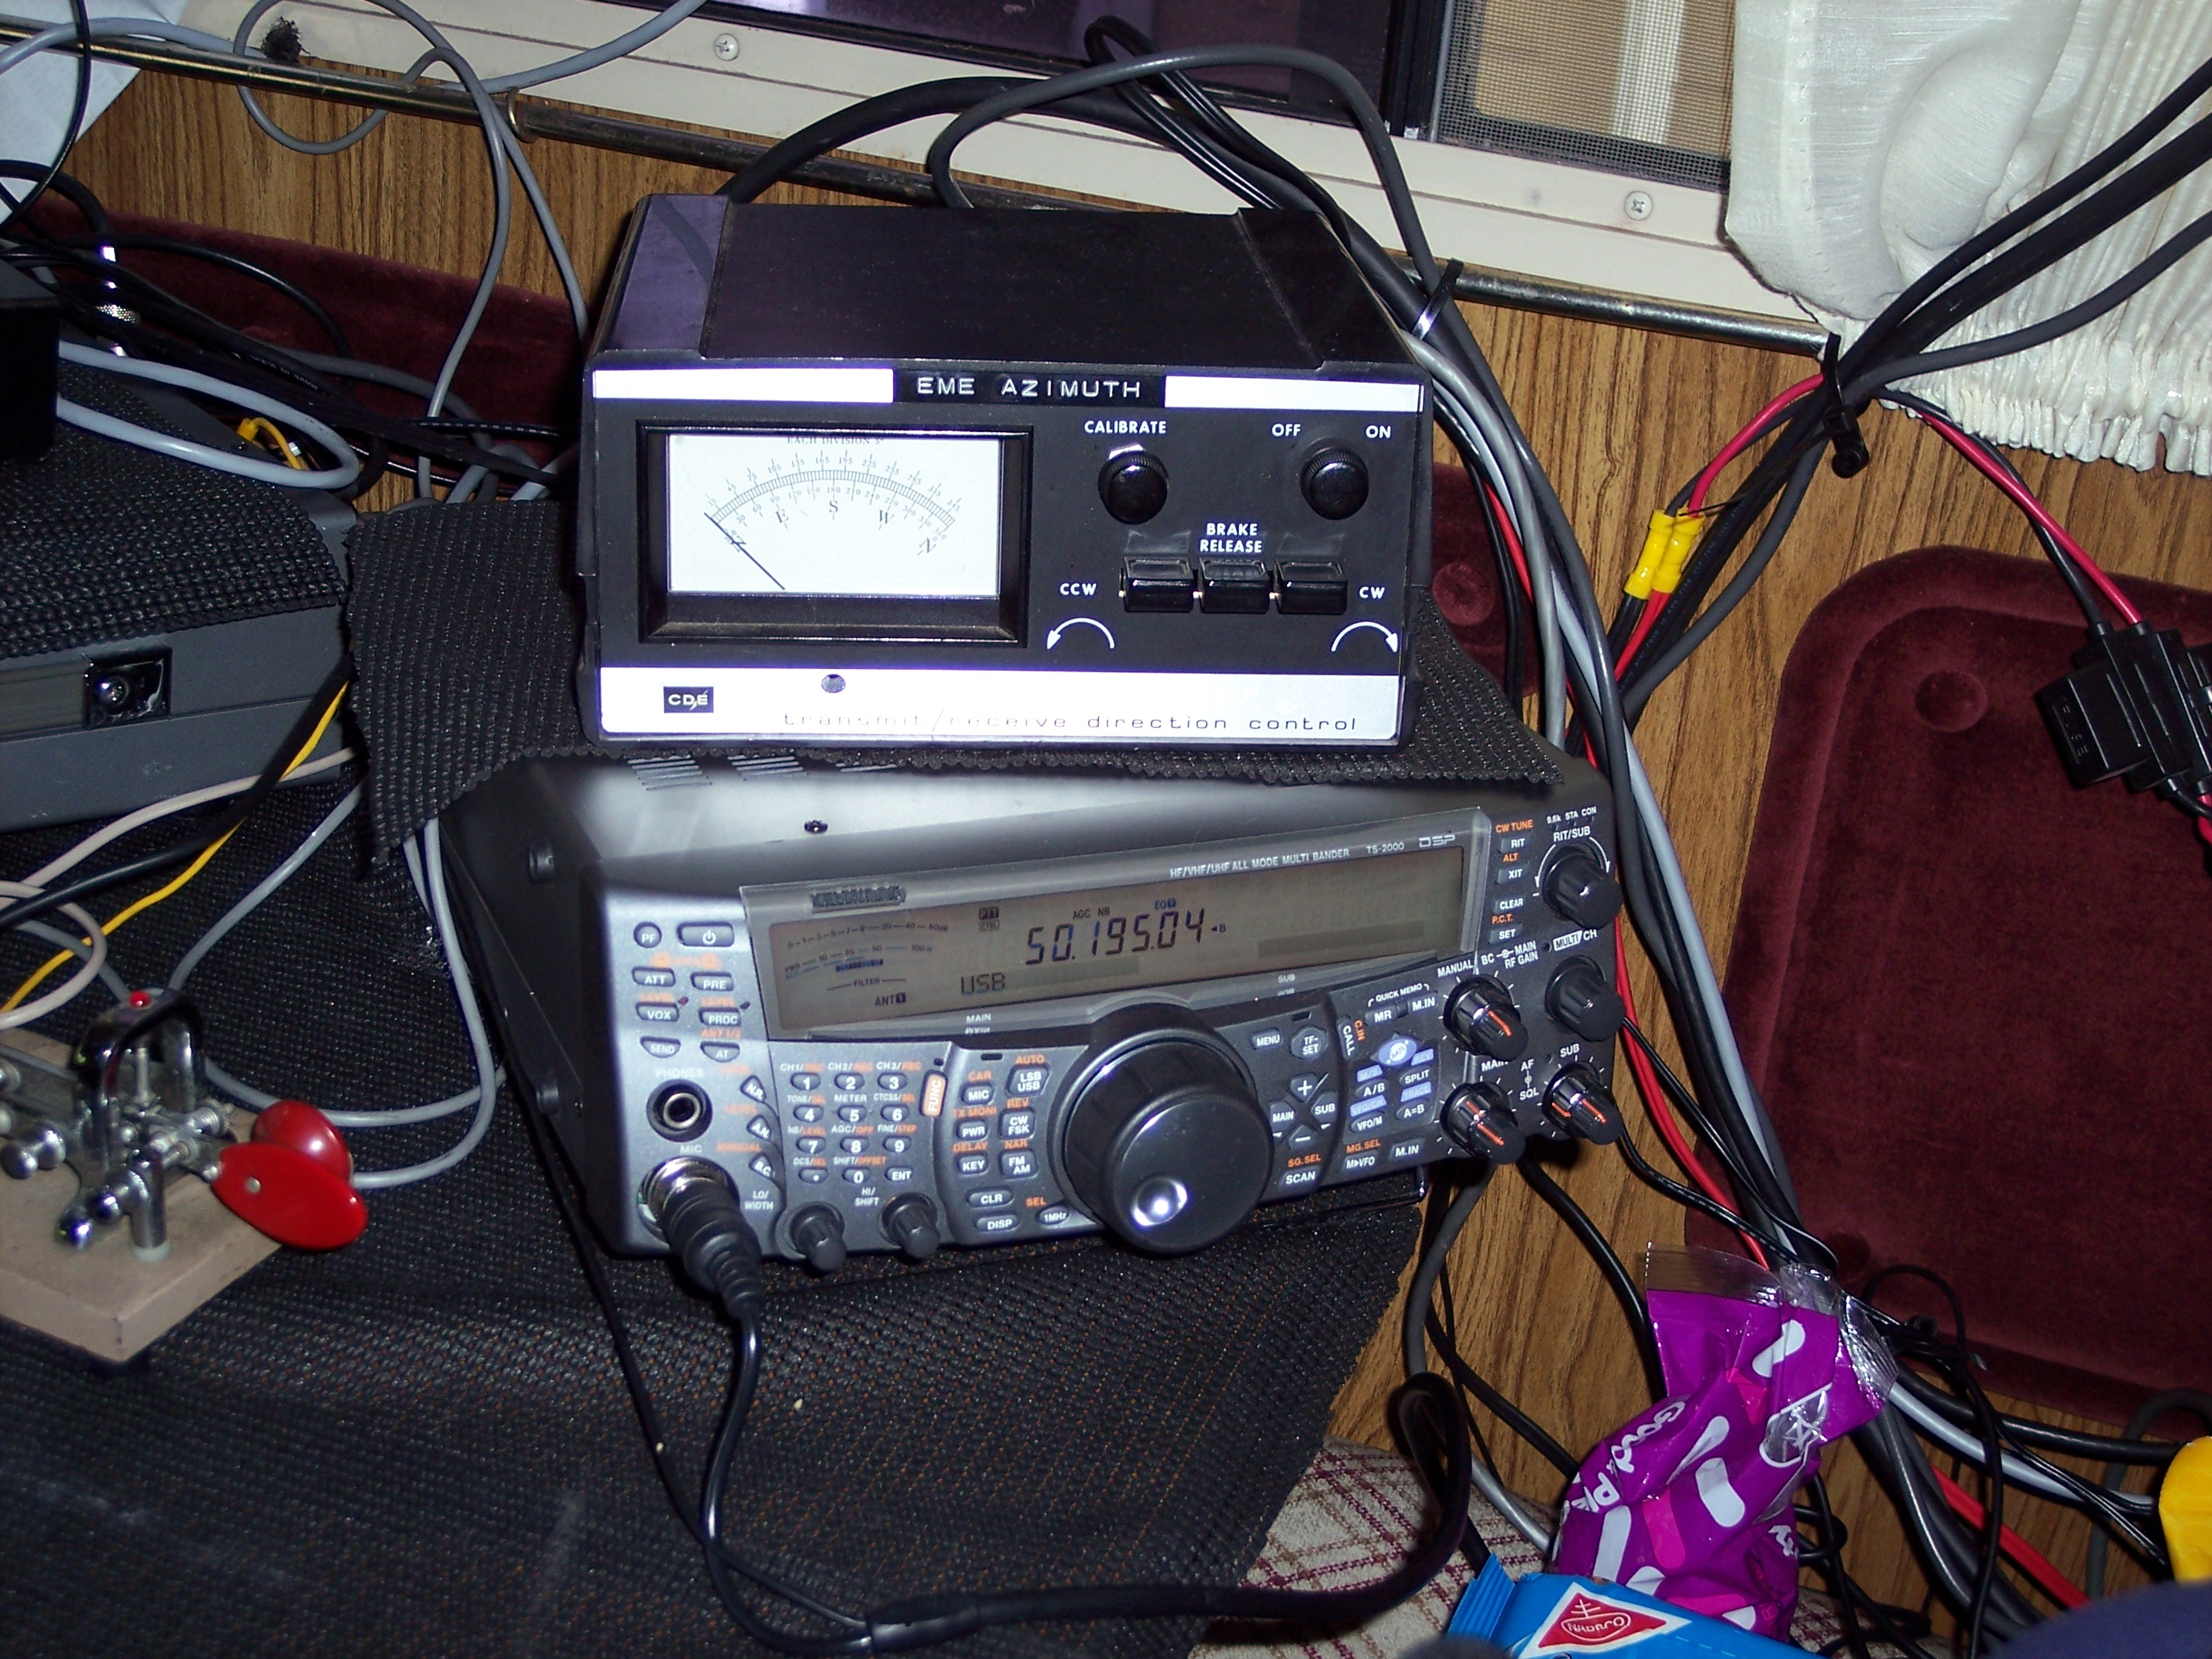 K3lfo W3dio Rover Site 2304 And 3456 Mhz Power Amplifiers We